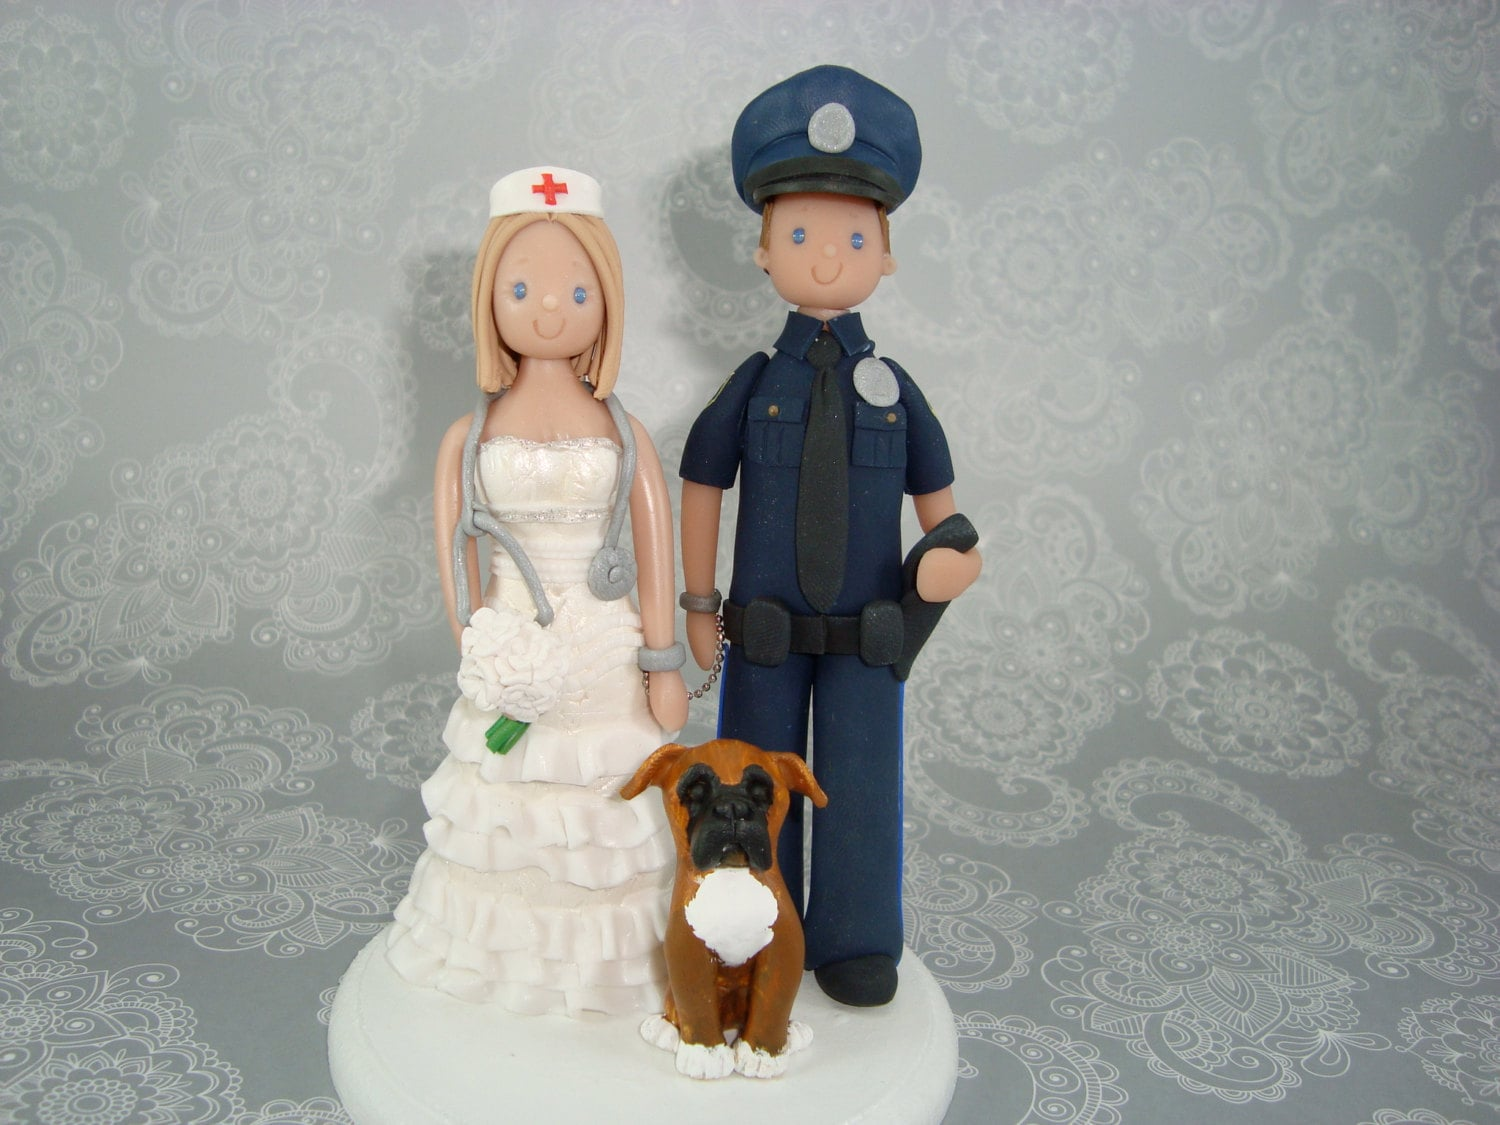 Police Officer Amp Nurse Costomized Wedding Cake Topper By Mudcards